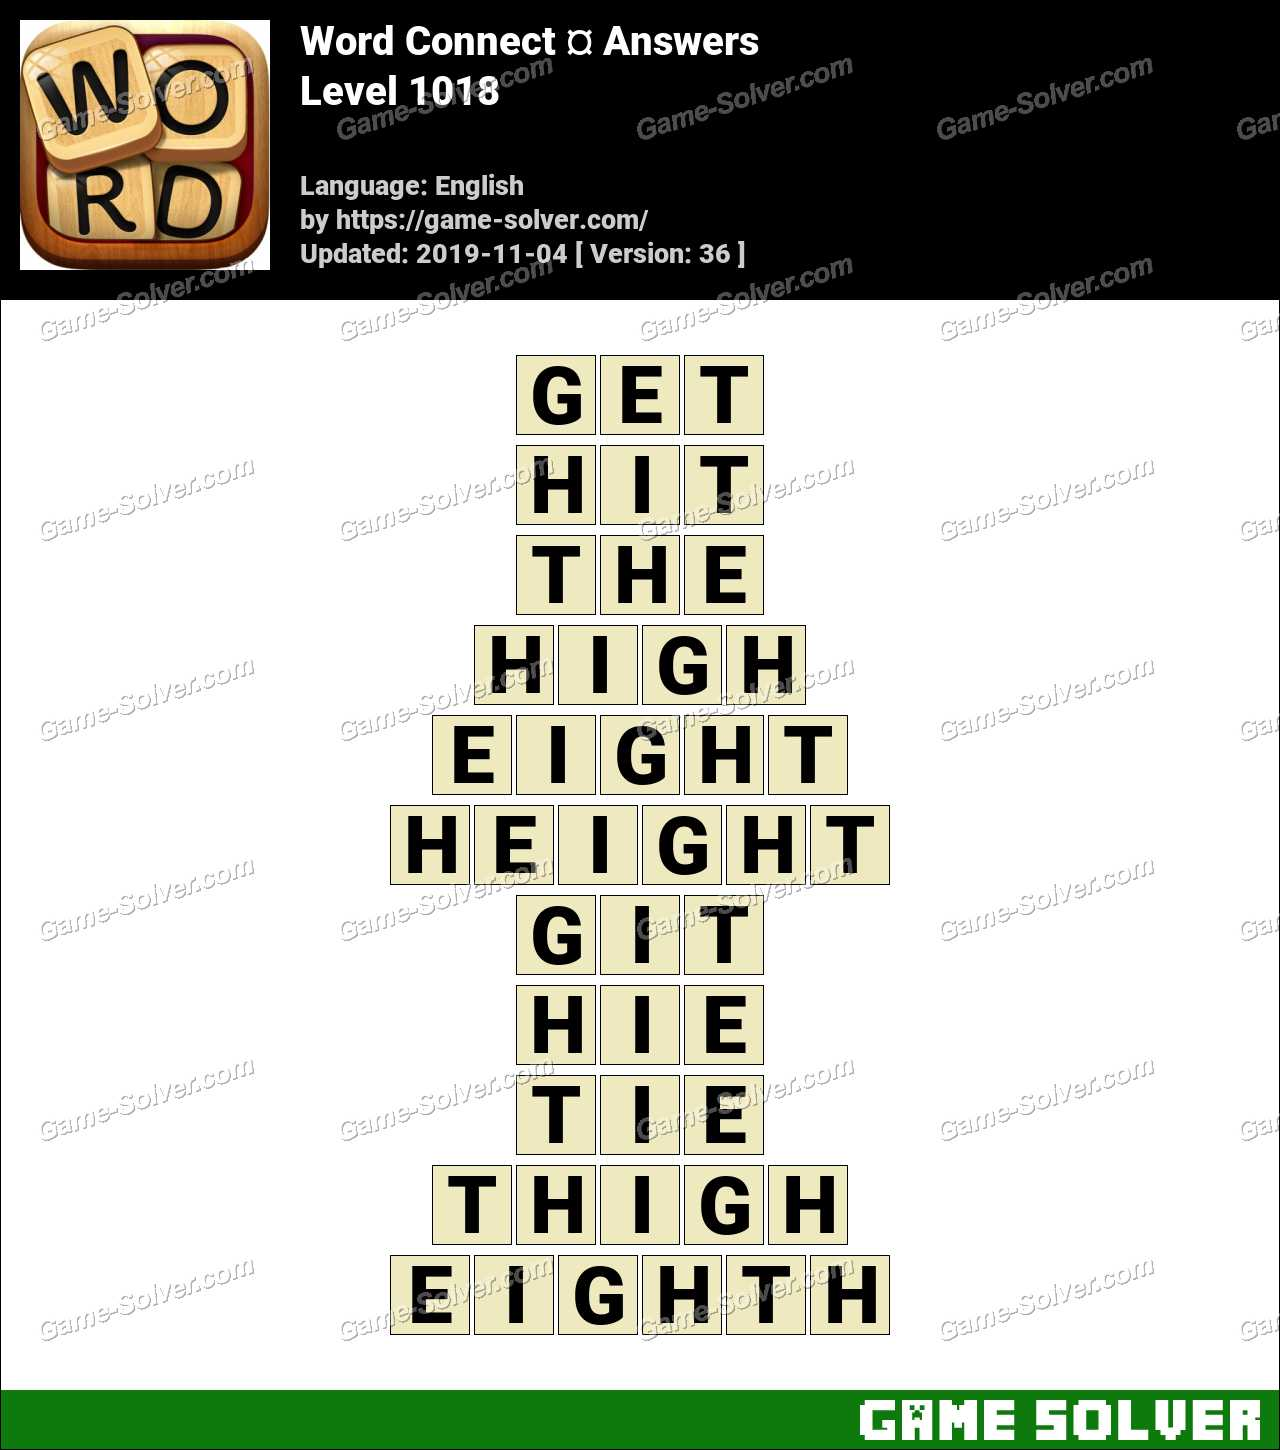 Word Connect Level 1018 Answers